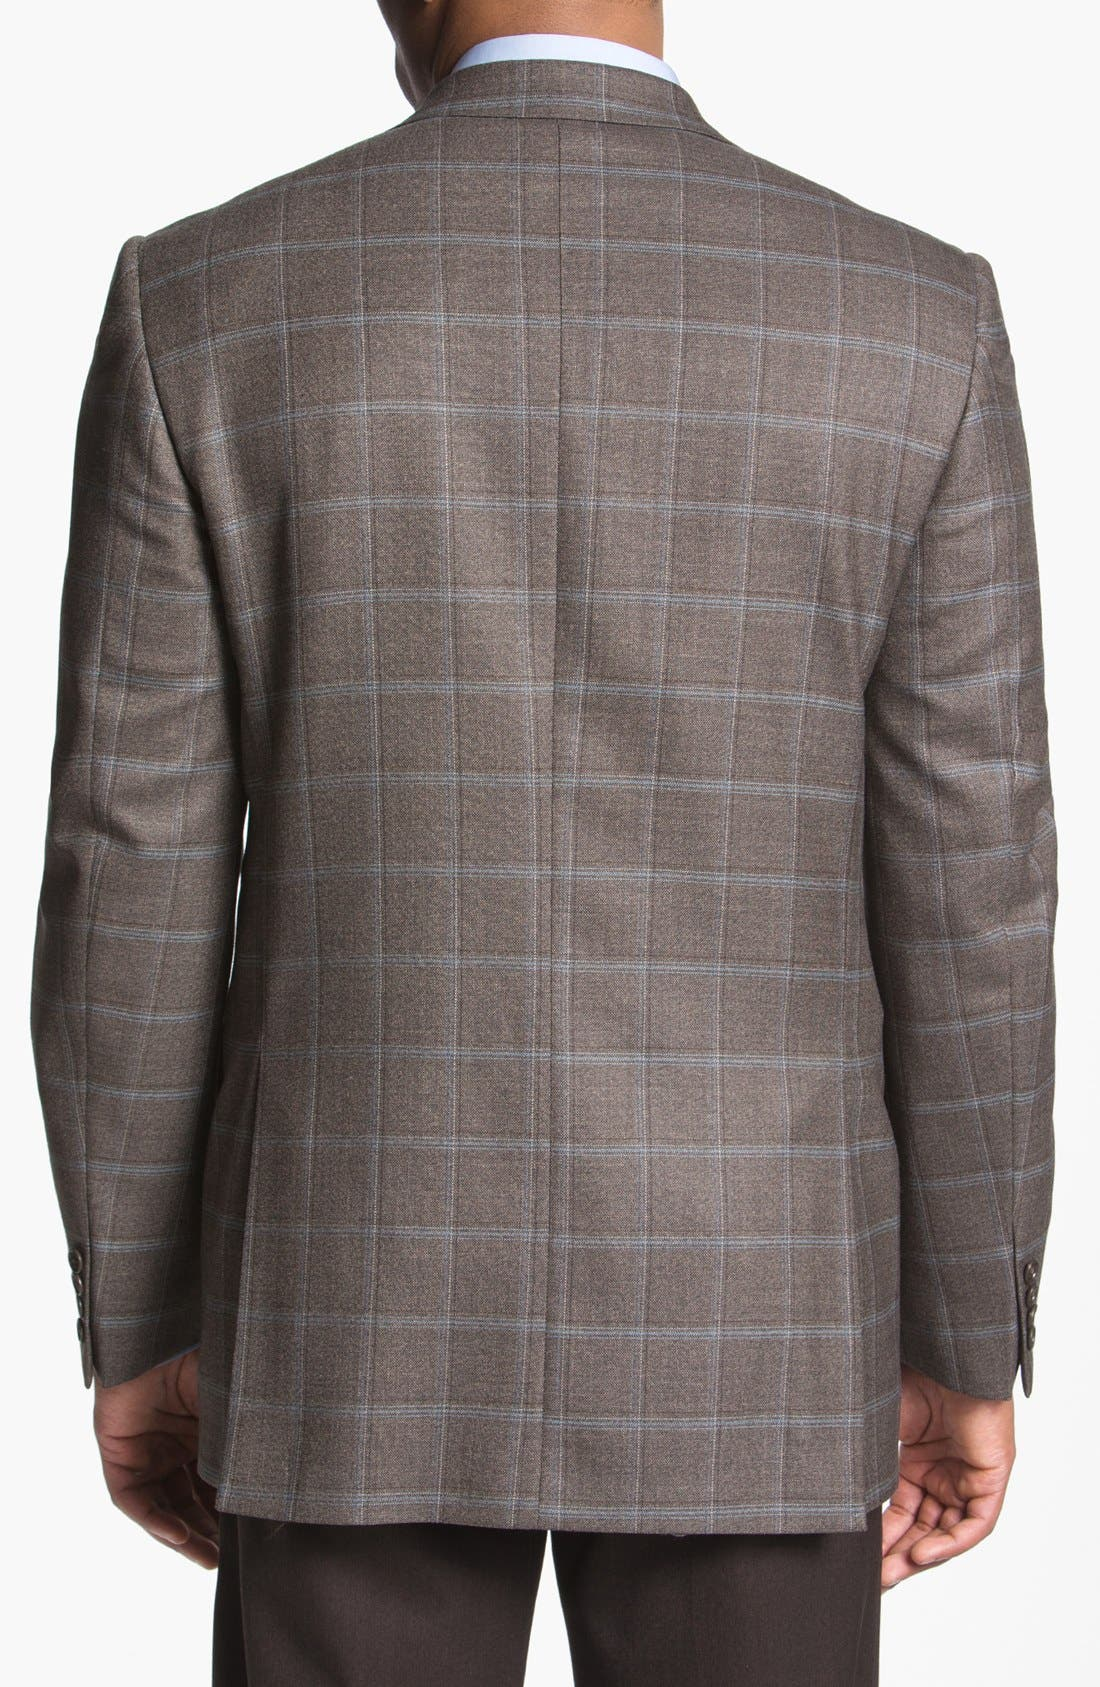 Alternate Image 2  - Joseph Abboud 'Signature Silver' Plaid Wool Sportcoat (Online Only)